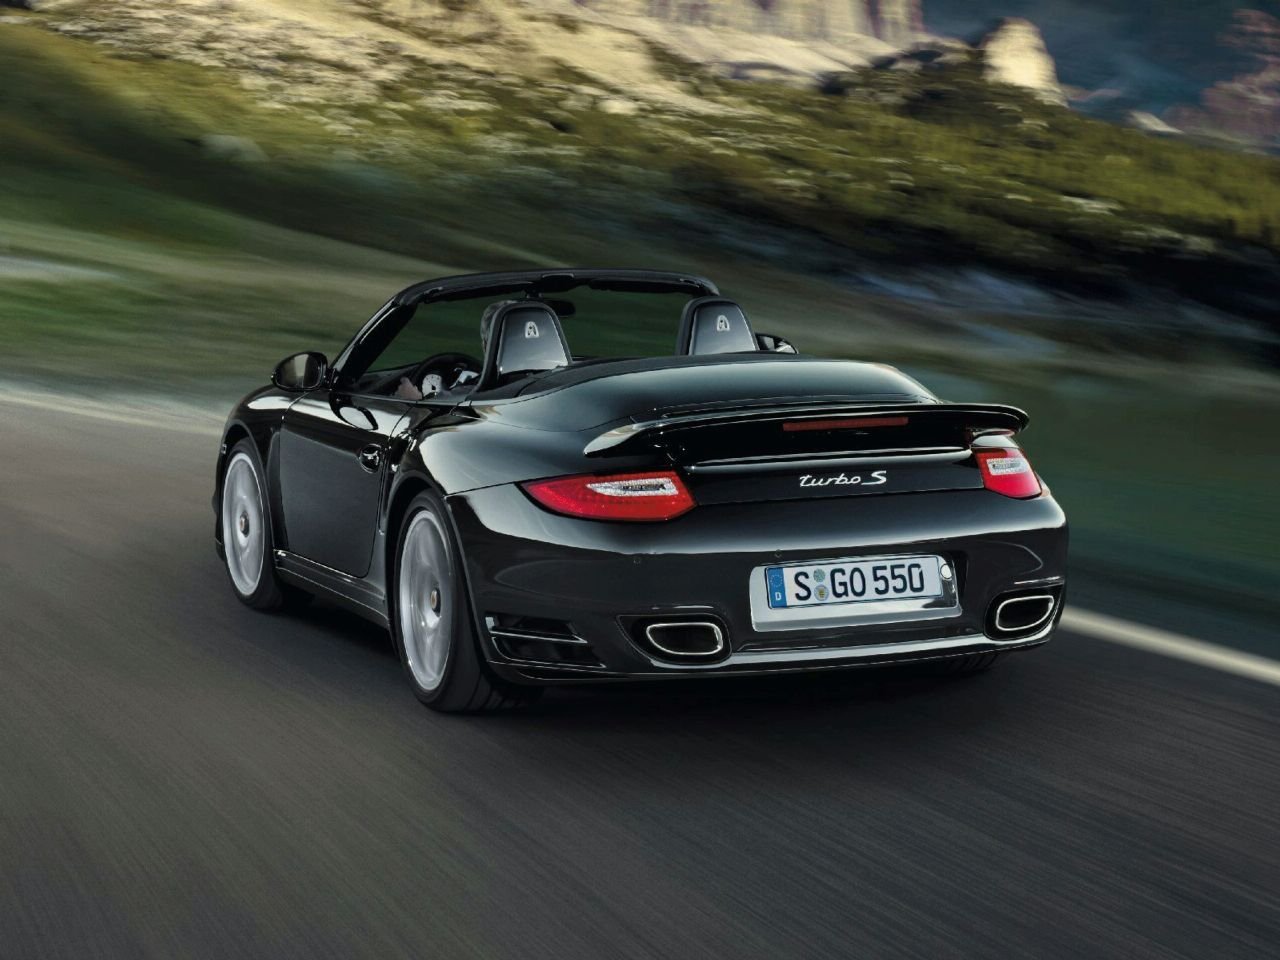 2011 porsche 911 turbo s w 530hp revealed. Black Bedroom Furniture Sets. Home Design Ideas